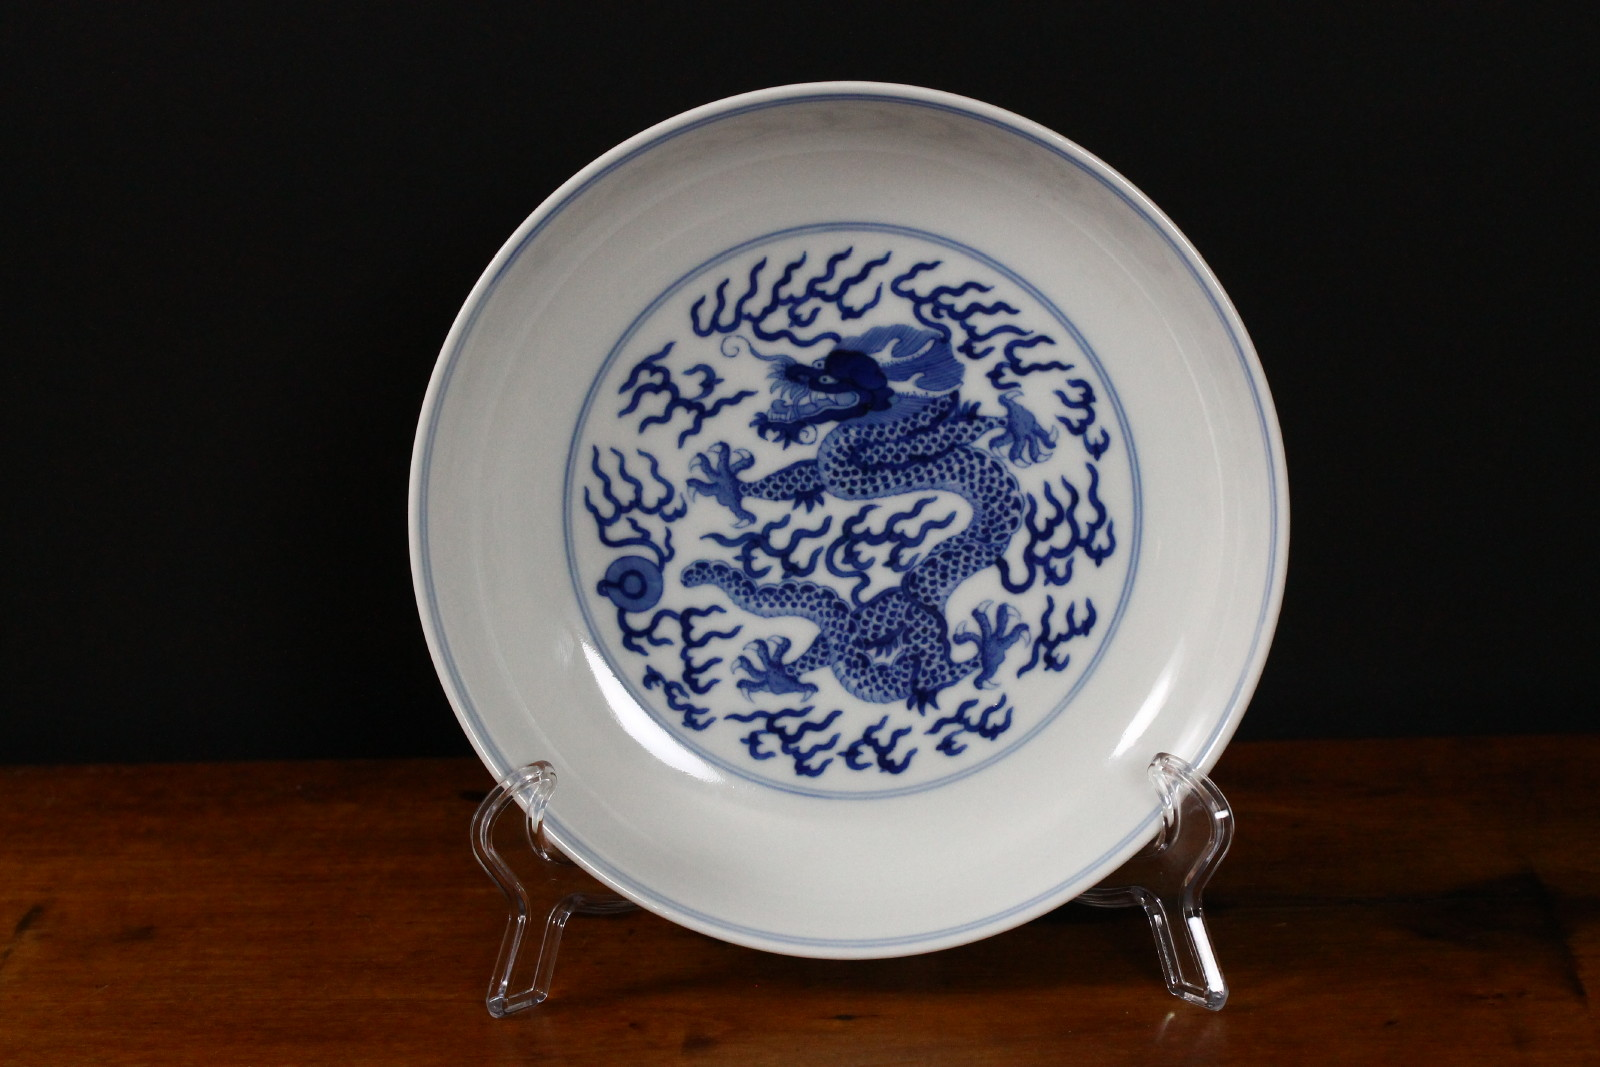 Chinese Guangxu blue and white dish, 7¼in dia., with underglaze blue six-character mark and of the period (1875-1908), featuring curled dragon and flaming pearl amongst thunderbolts. Est. $2,000-$3,000. Manatee Galleries image.